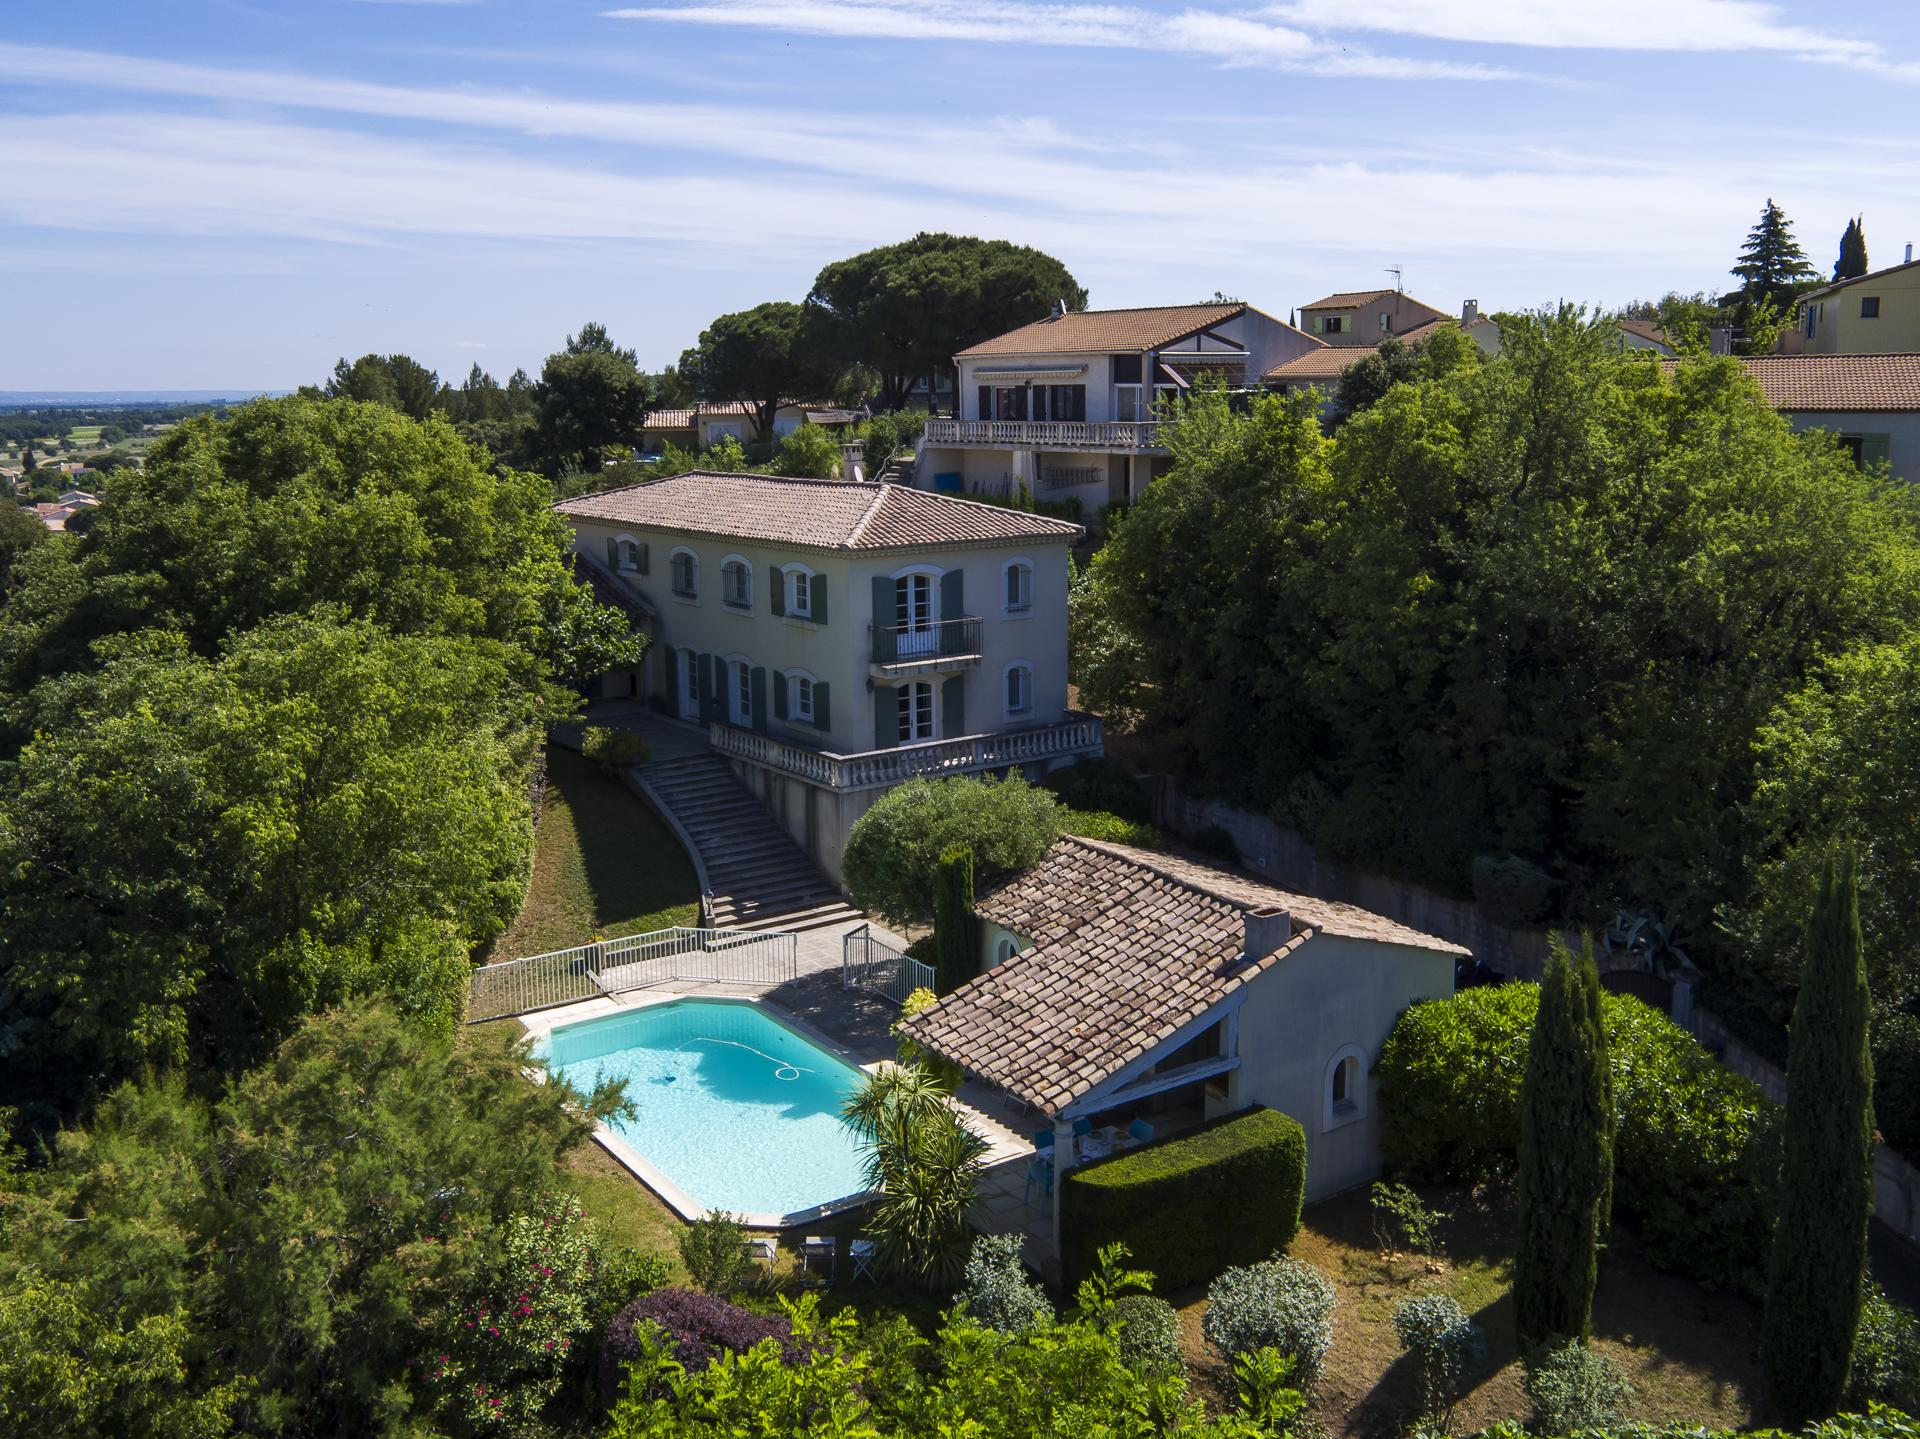 Villa, Grounds and Pool, Le Cheval Blanc, Vauvert, Provence.